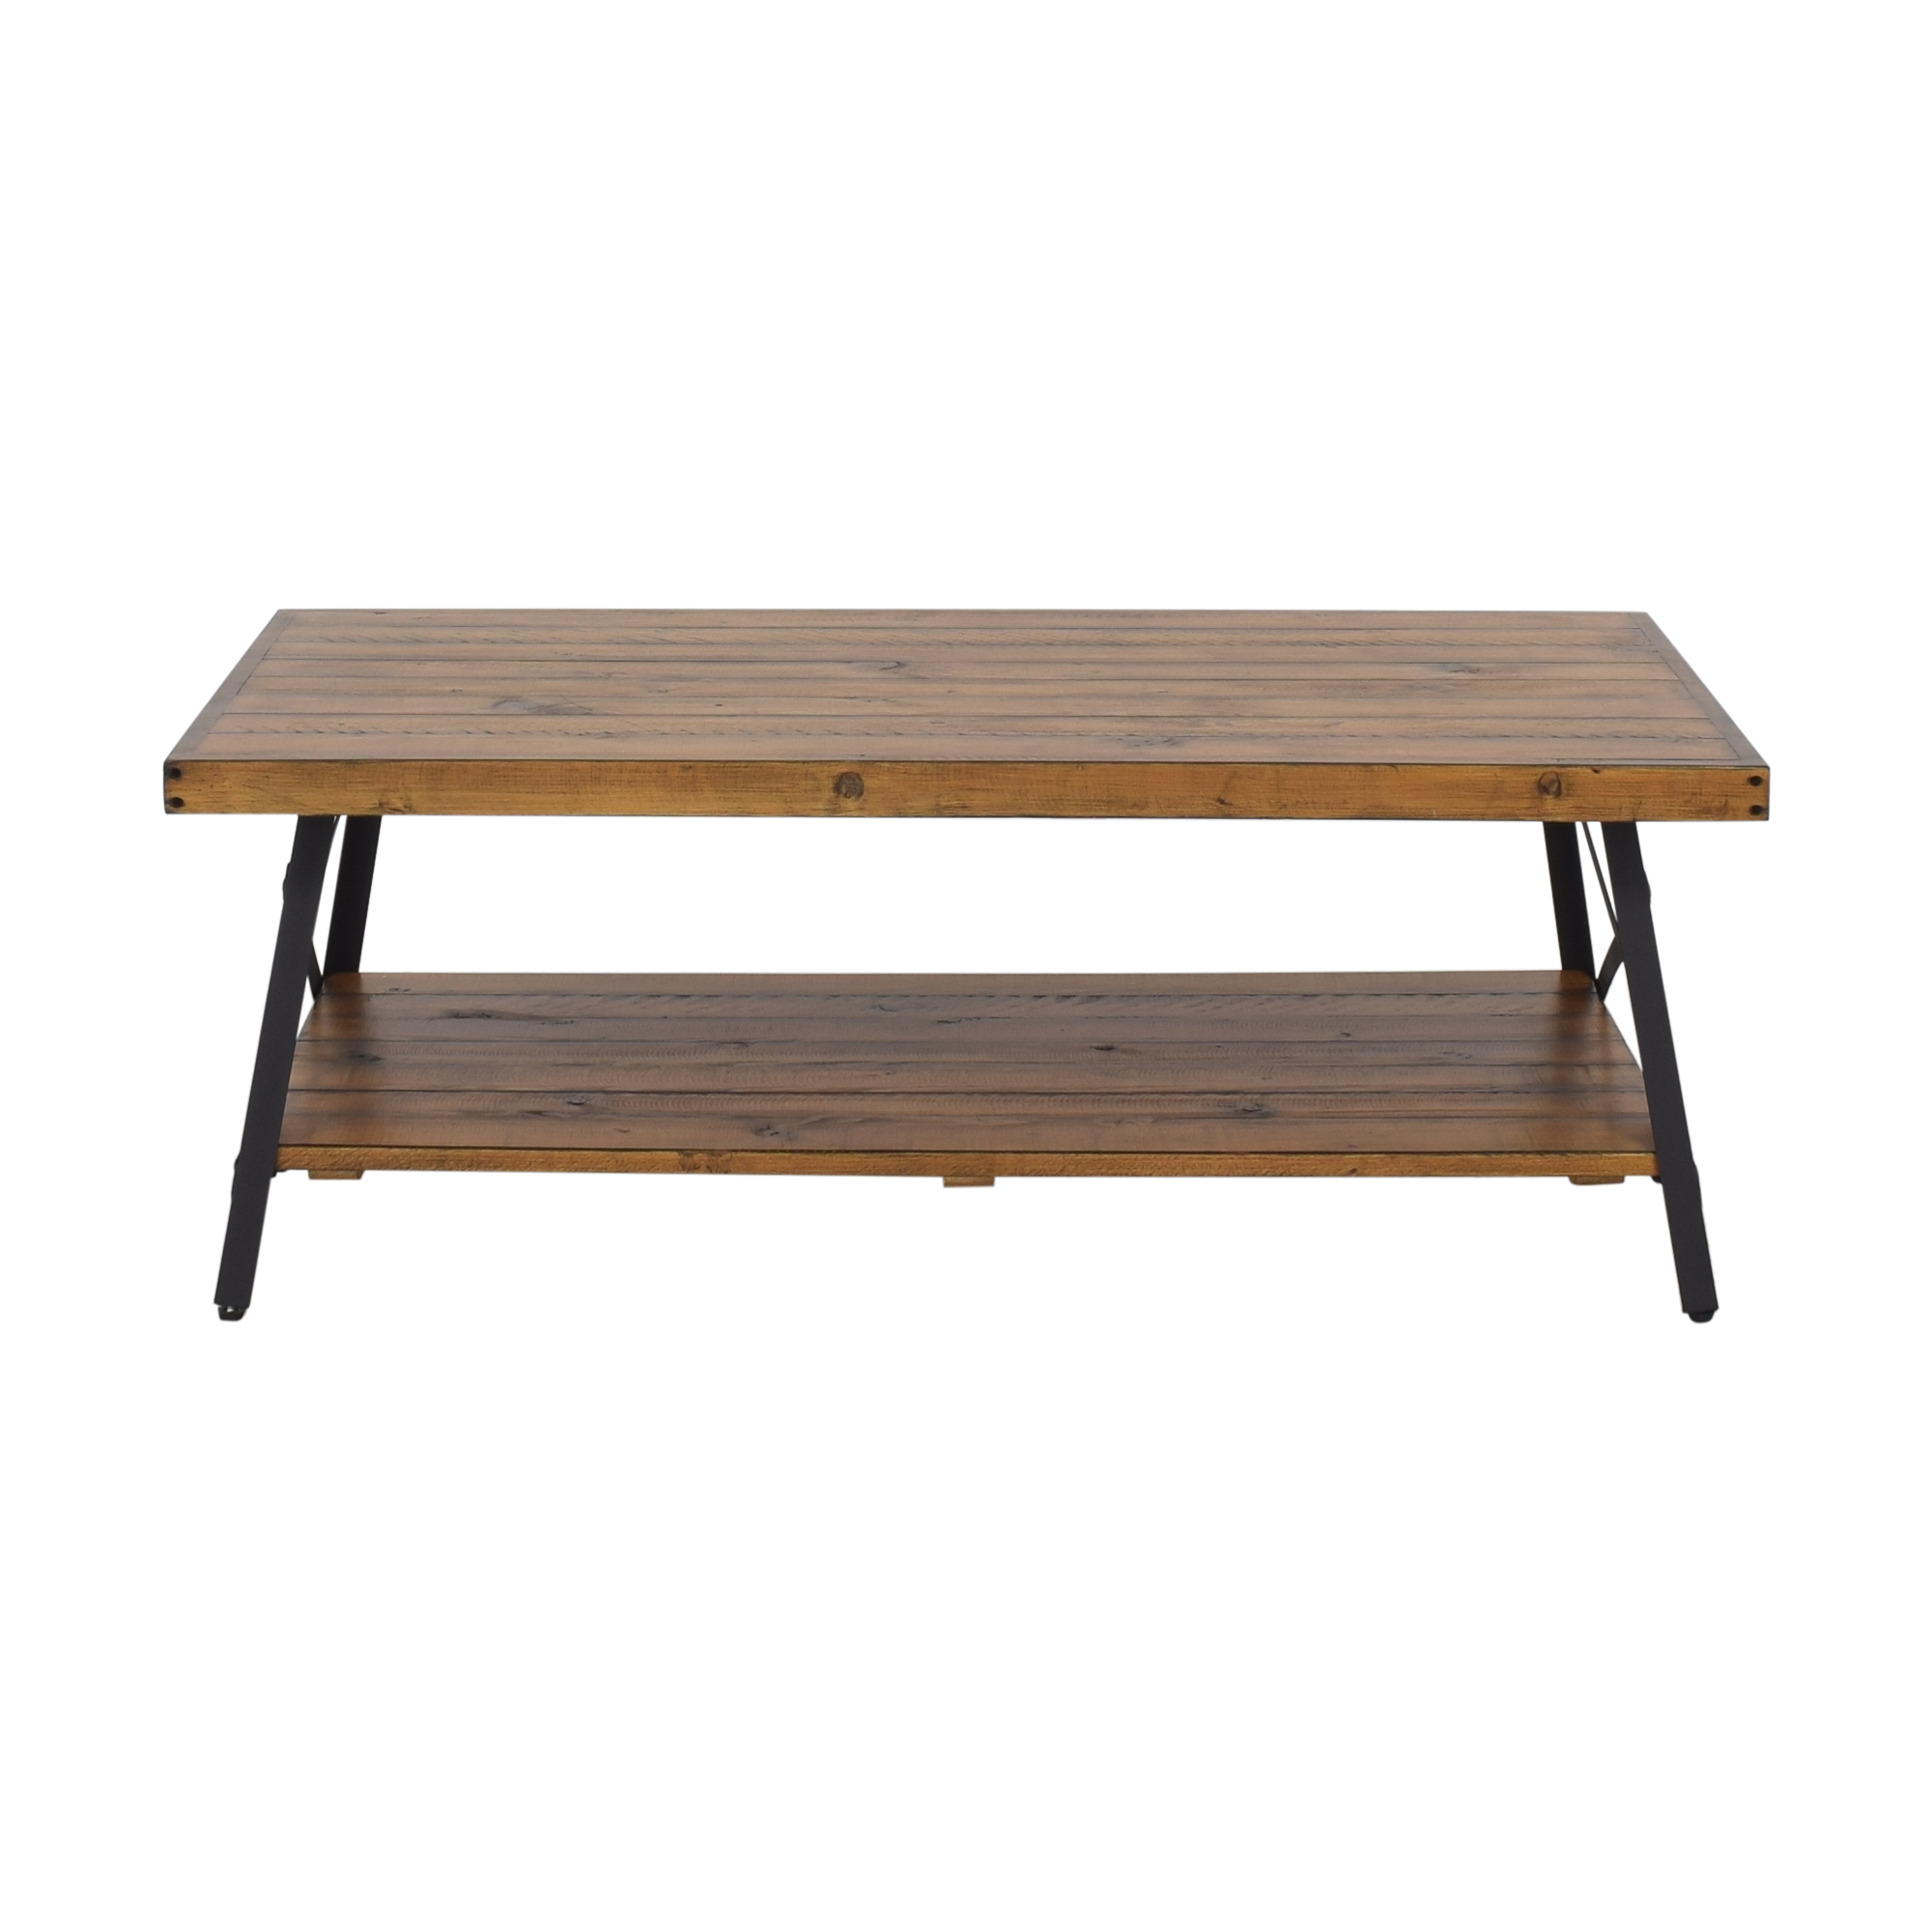 Trent Austin Design Trent Austin Design Kinsella Coffee Table with Storage Tables